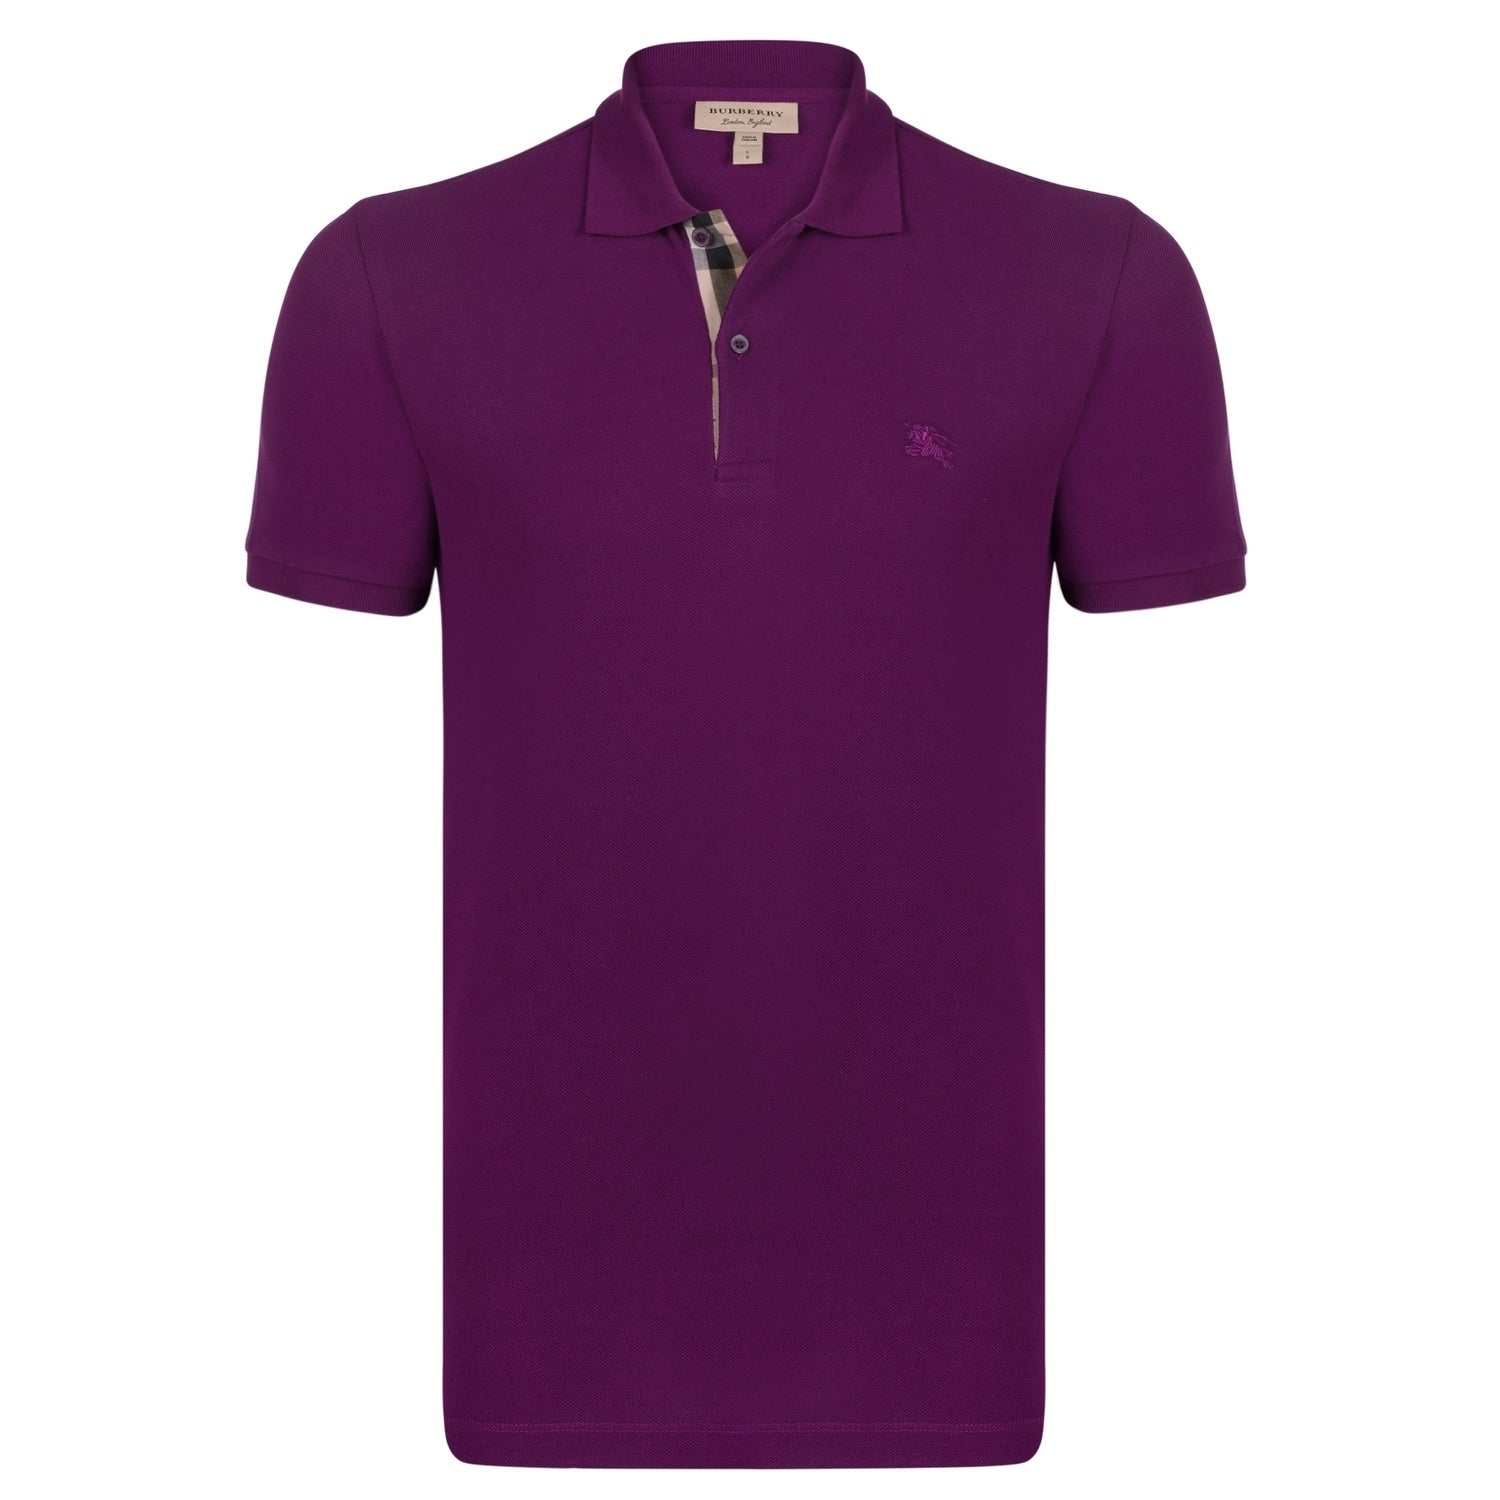 74951c9d9 Shop Men's Burberry Short Sleeve Dark Royal Purple Polo Shirt - On Sale -  Free Shipping Today - Overstock - 21852842